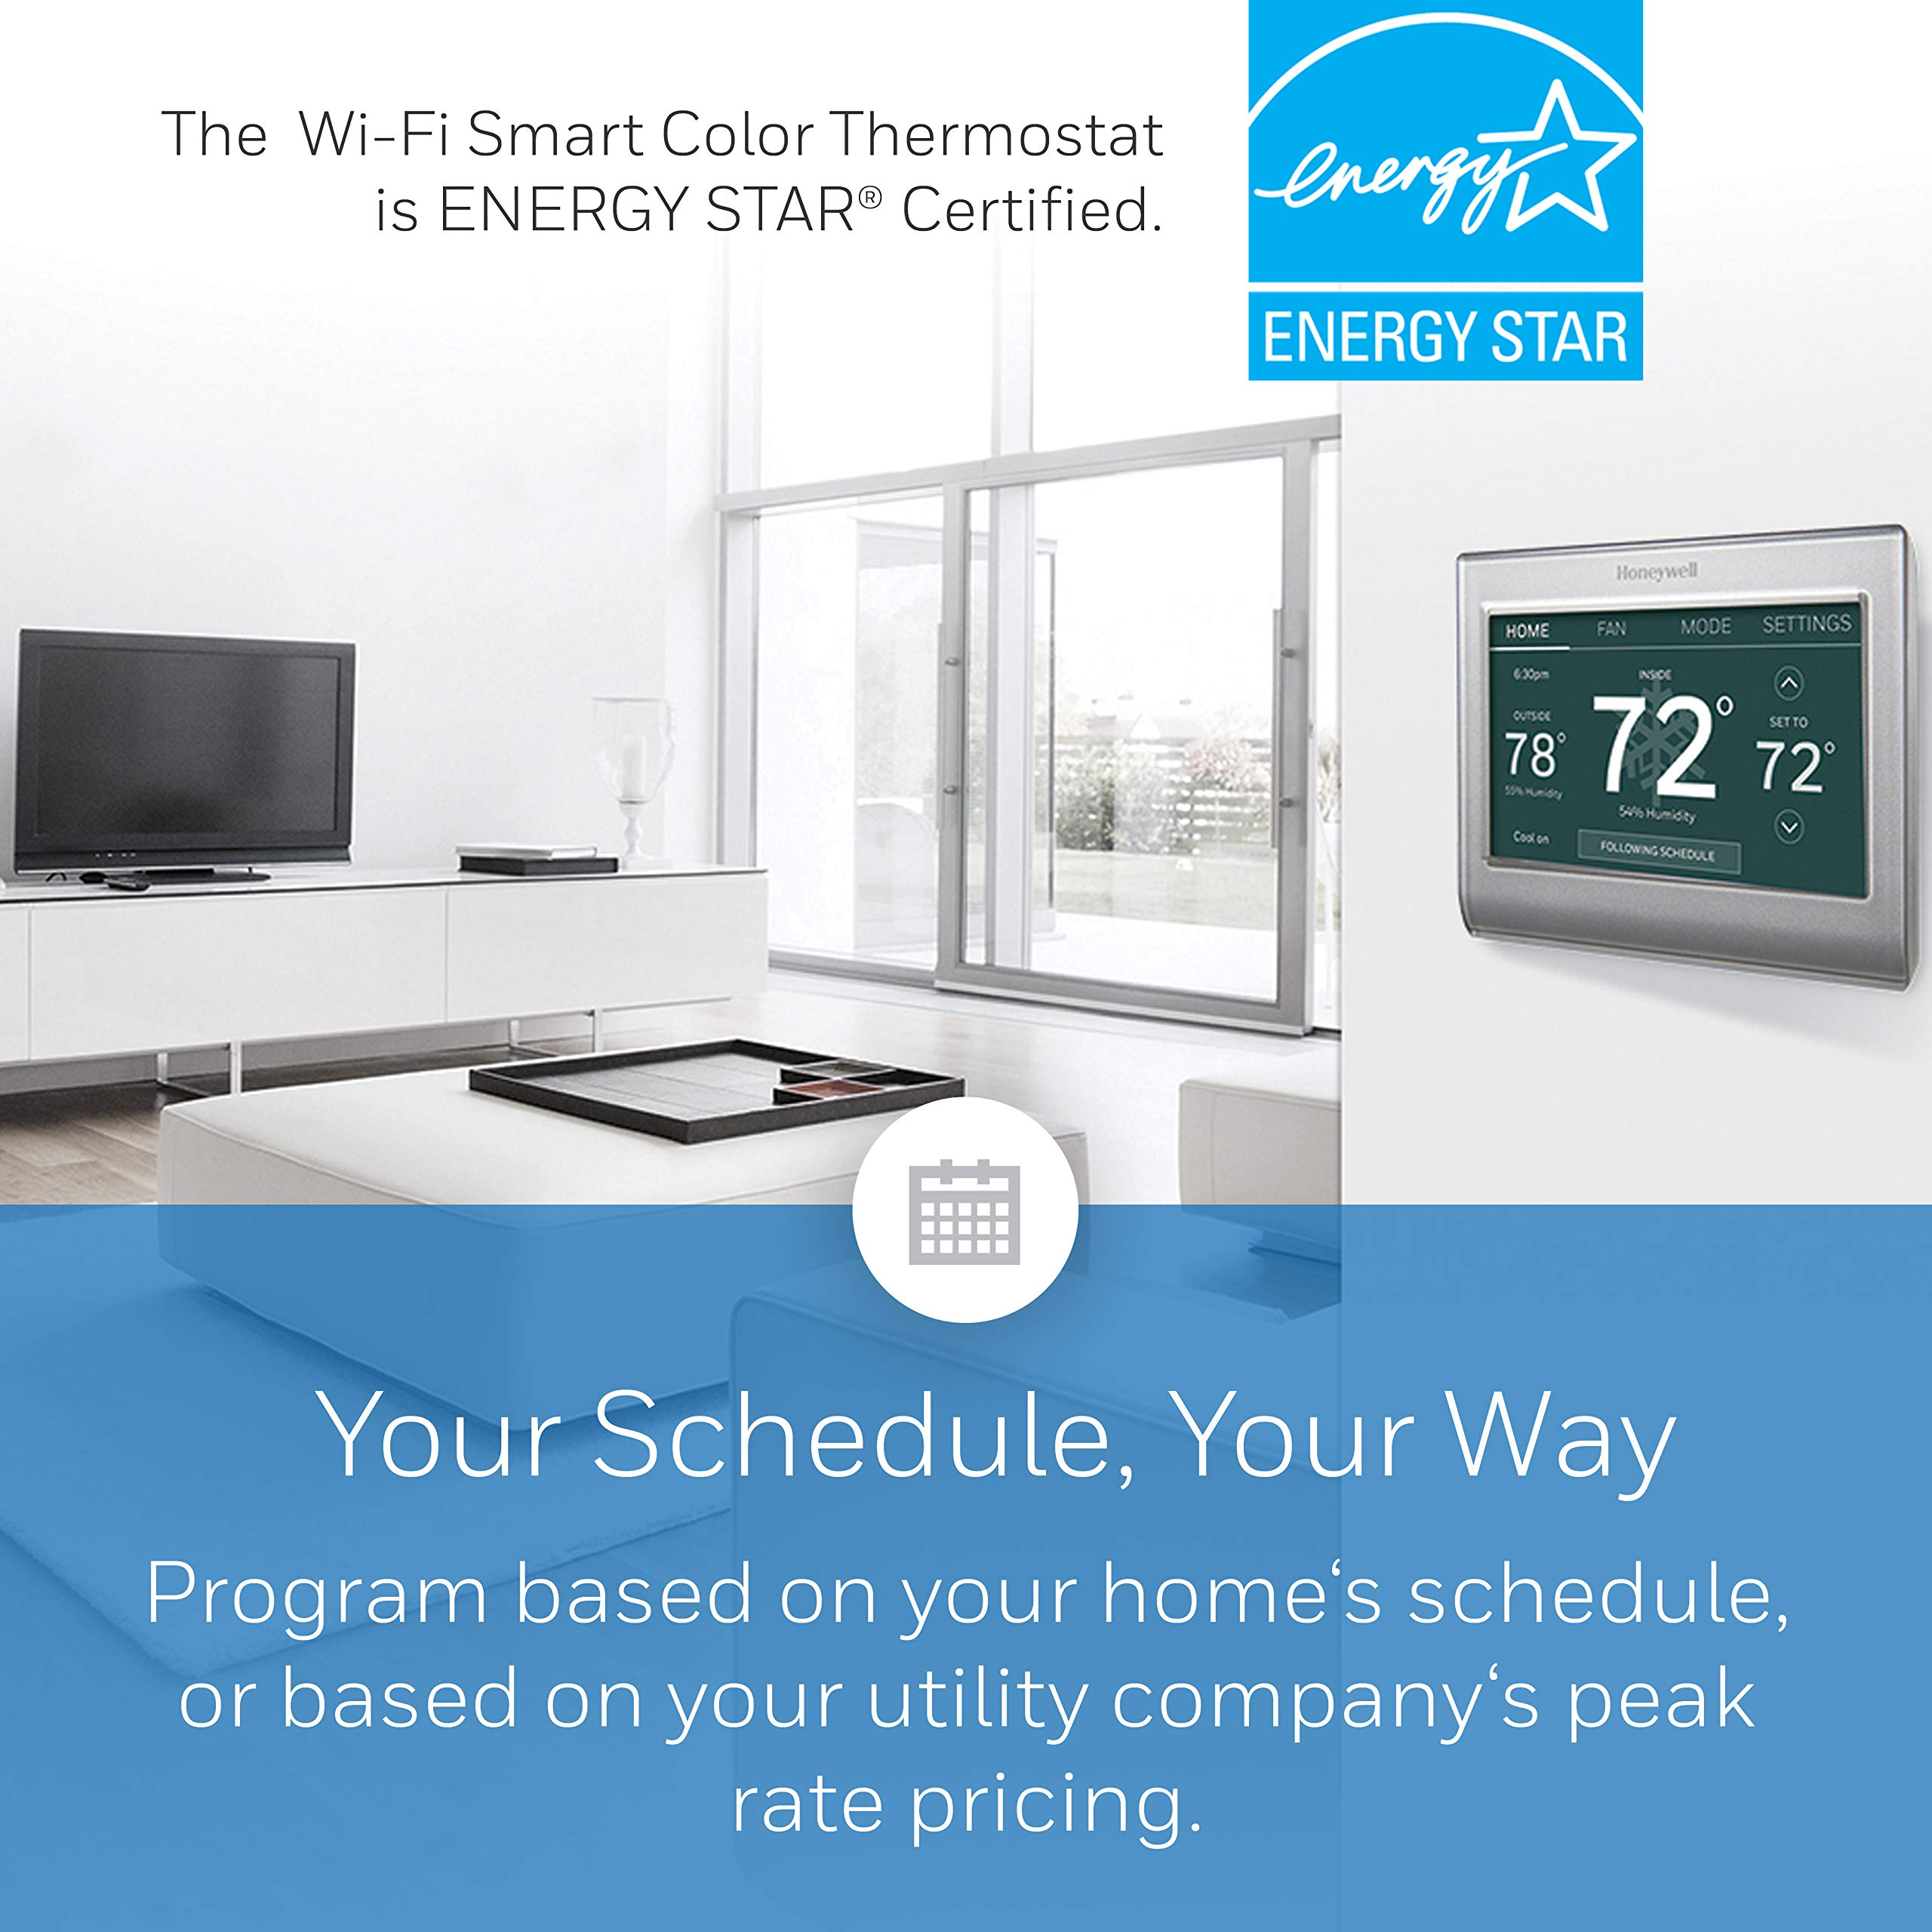 Honeywell Home Wi-Fi Smart Color Programmable Thermostat, Customizable Programming, Alexa and Apple Home Enabled, In-app Programming, Personalized Color Display, Easy Installation, (RTH9585WF1004) by Honeywell (Image #4)